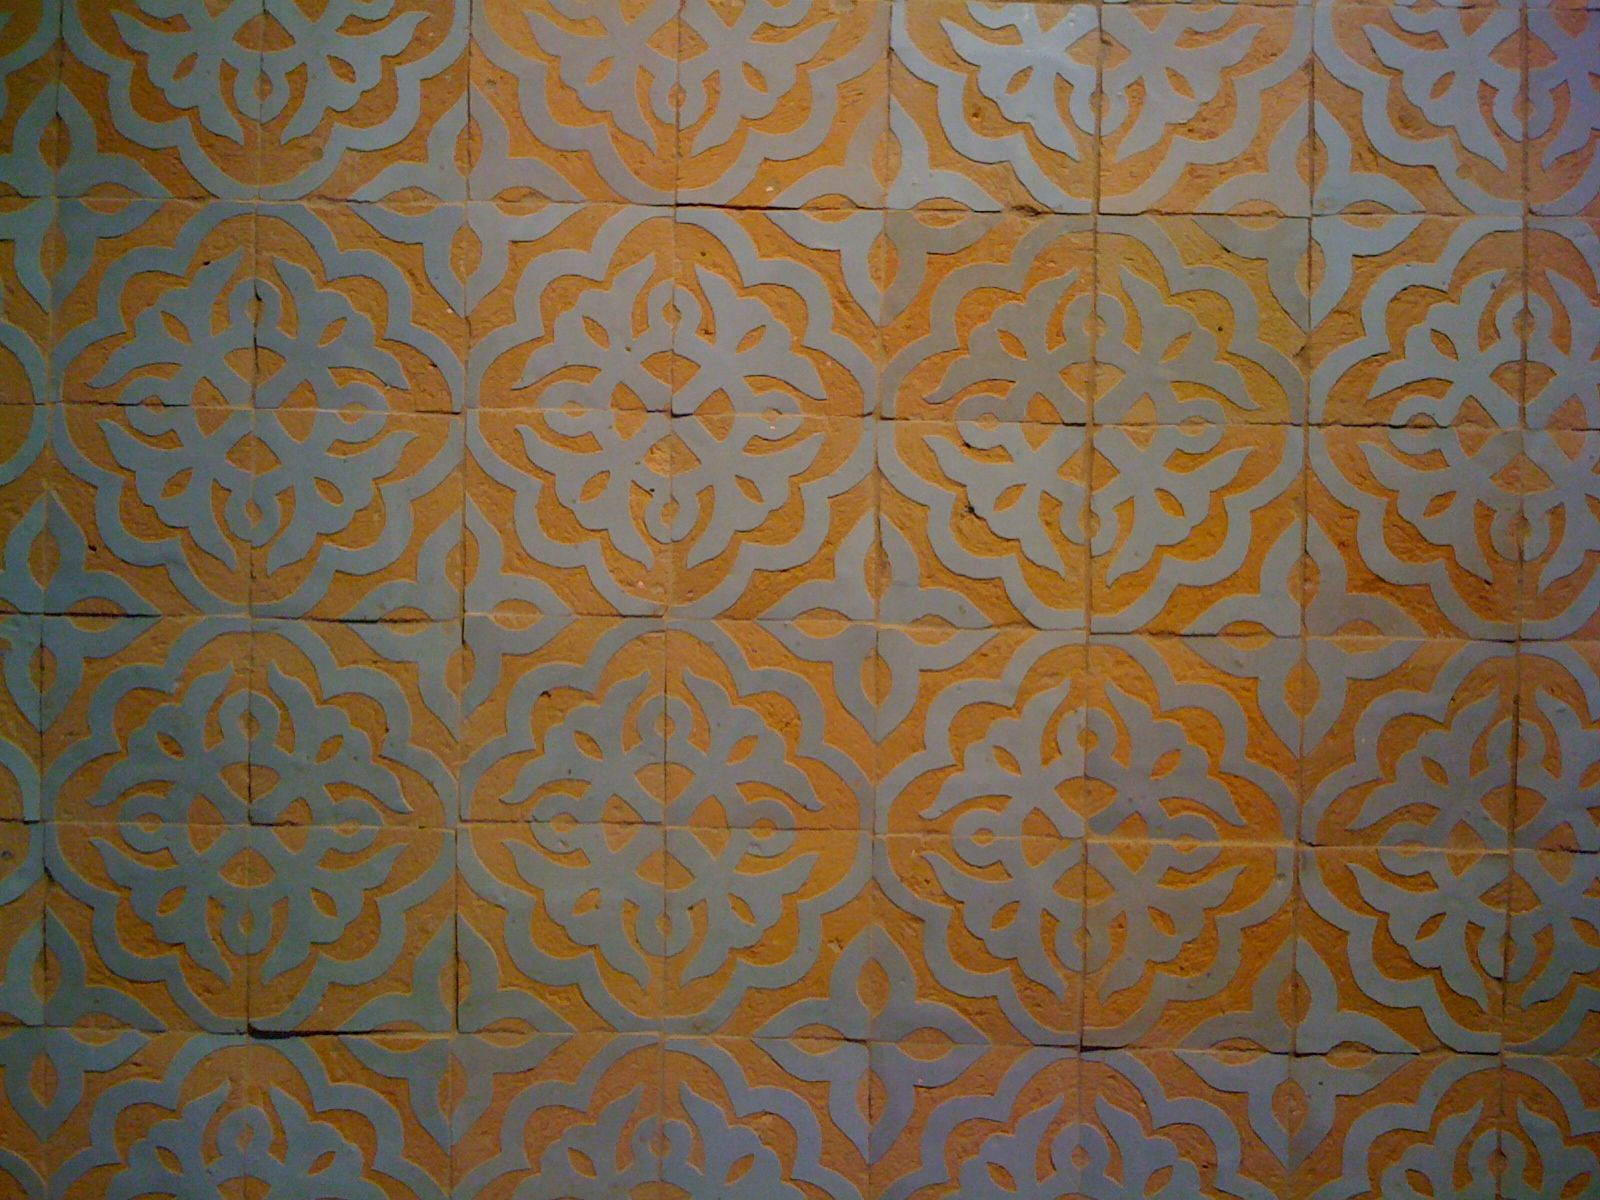 morrocan tile for headbord @Hollie Baker M House @Liane Caruso Beaudette Powers